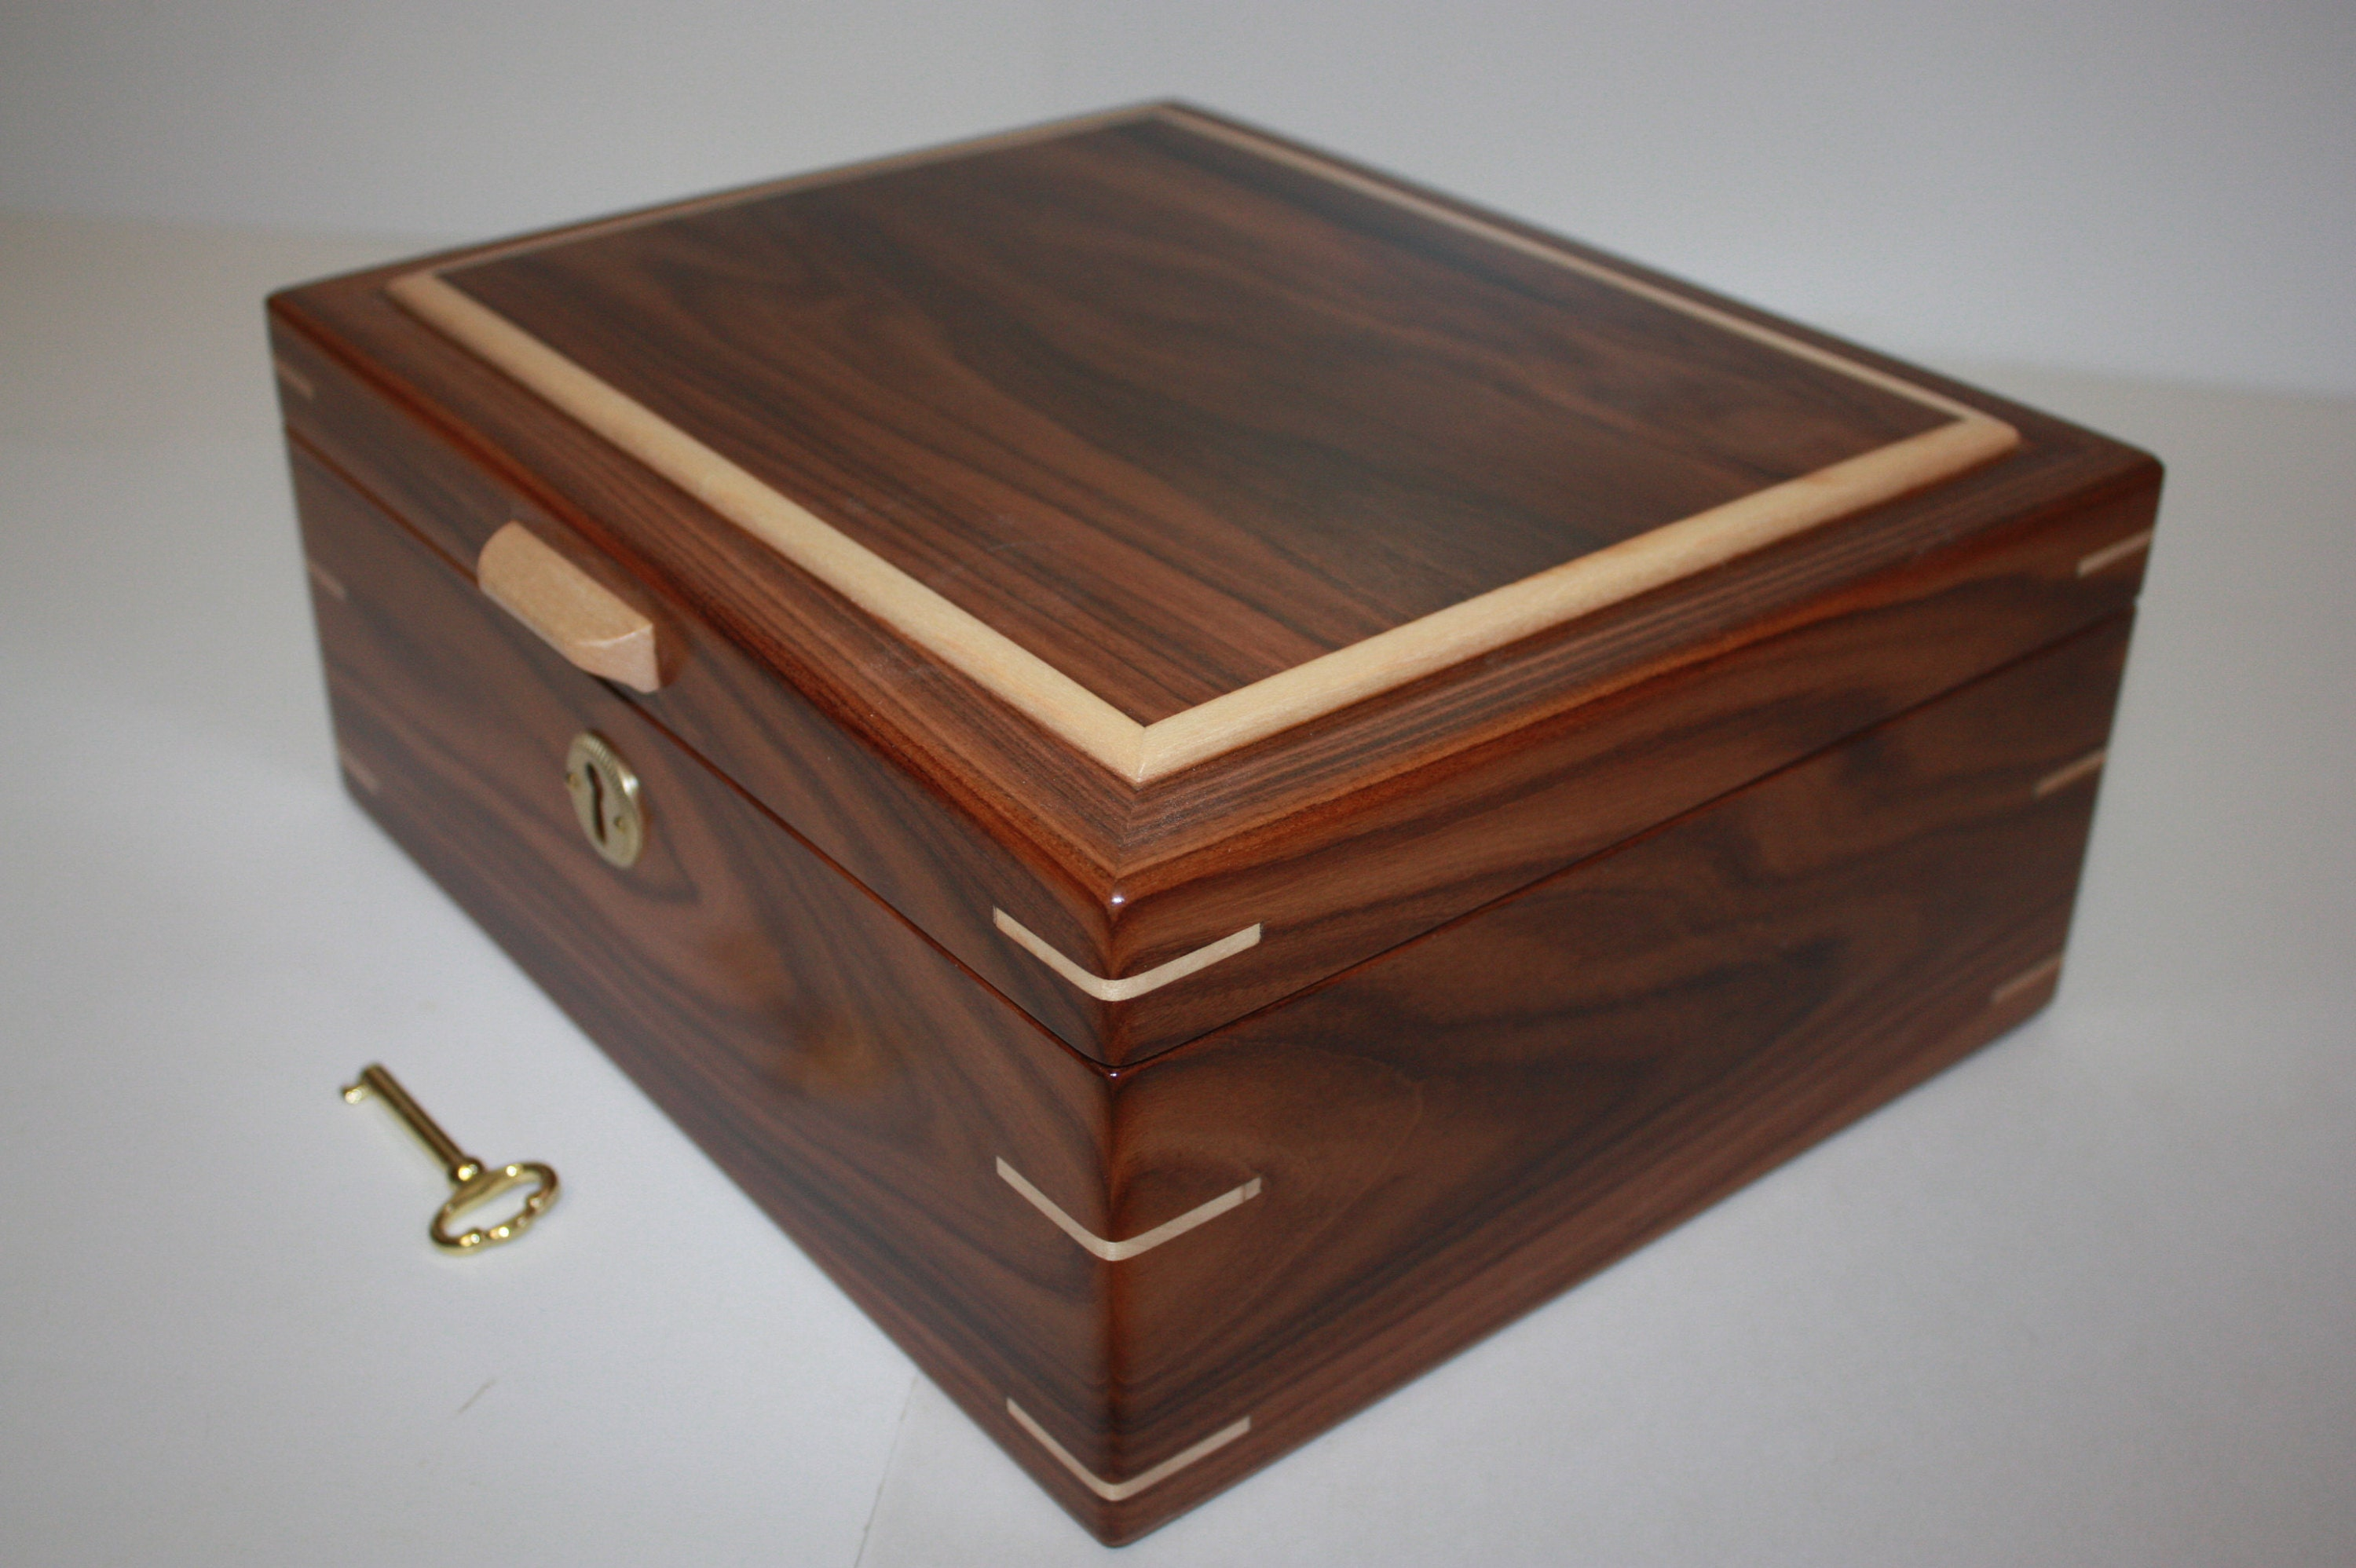 Morado/Bolivian Rosewood with Maple Humidor For Sale